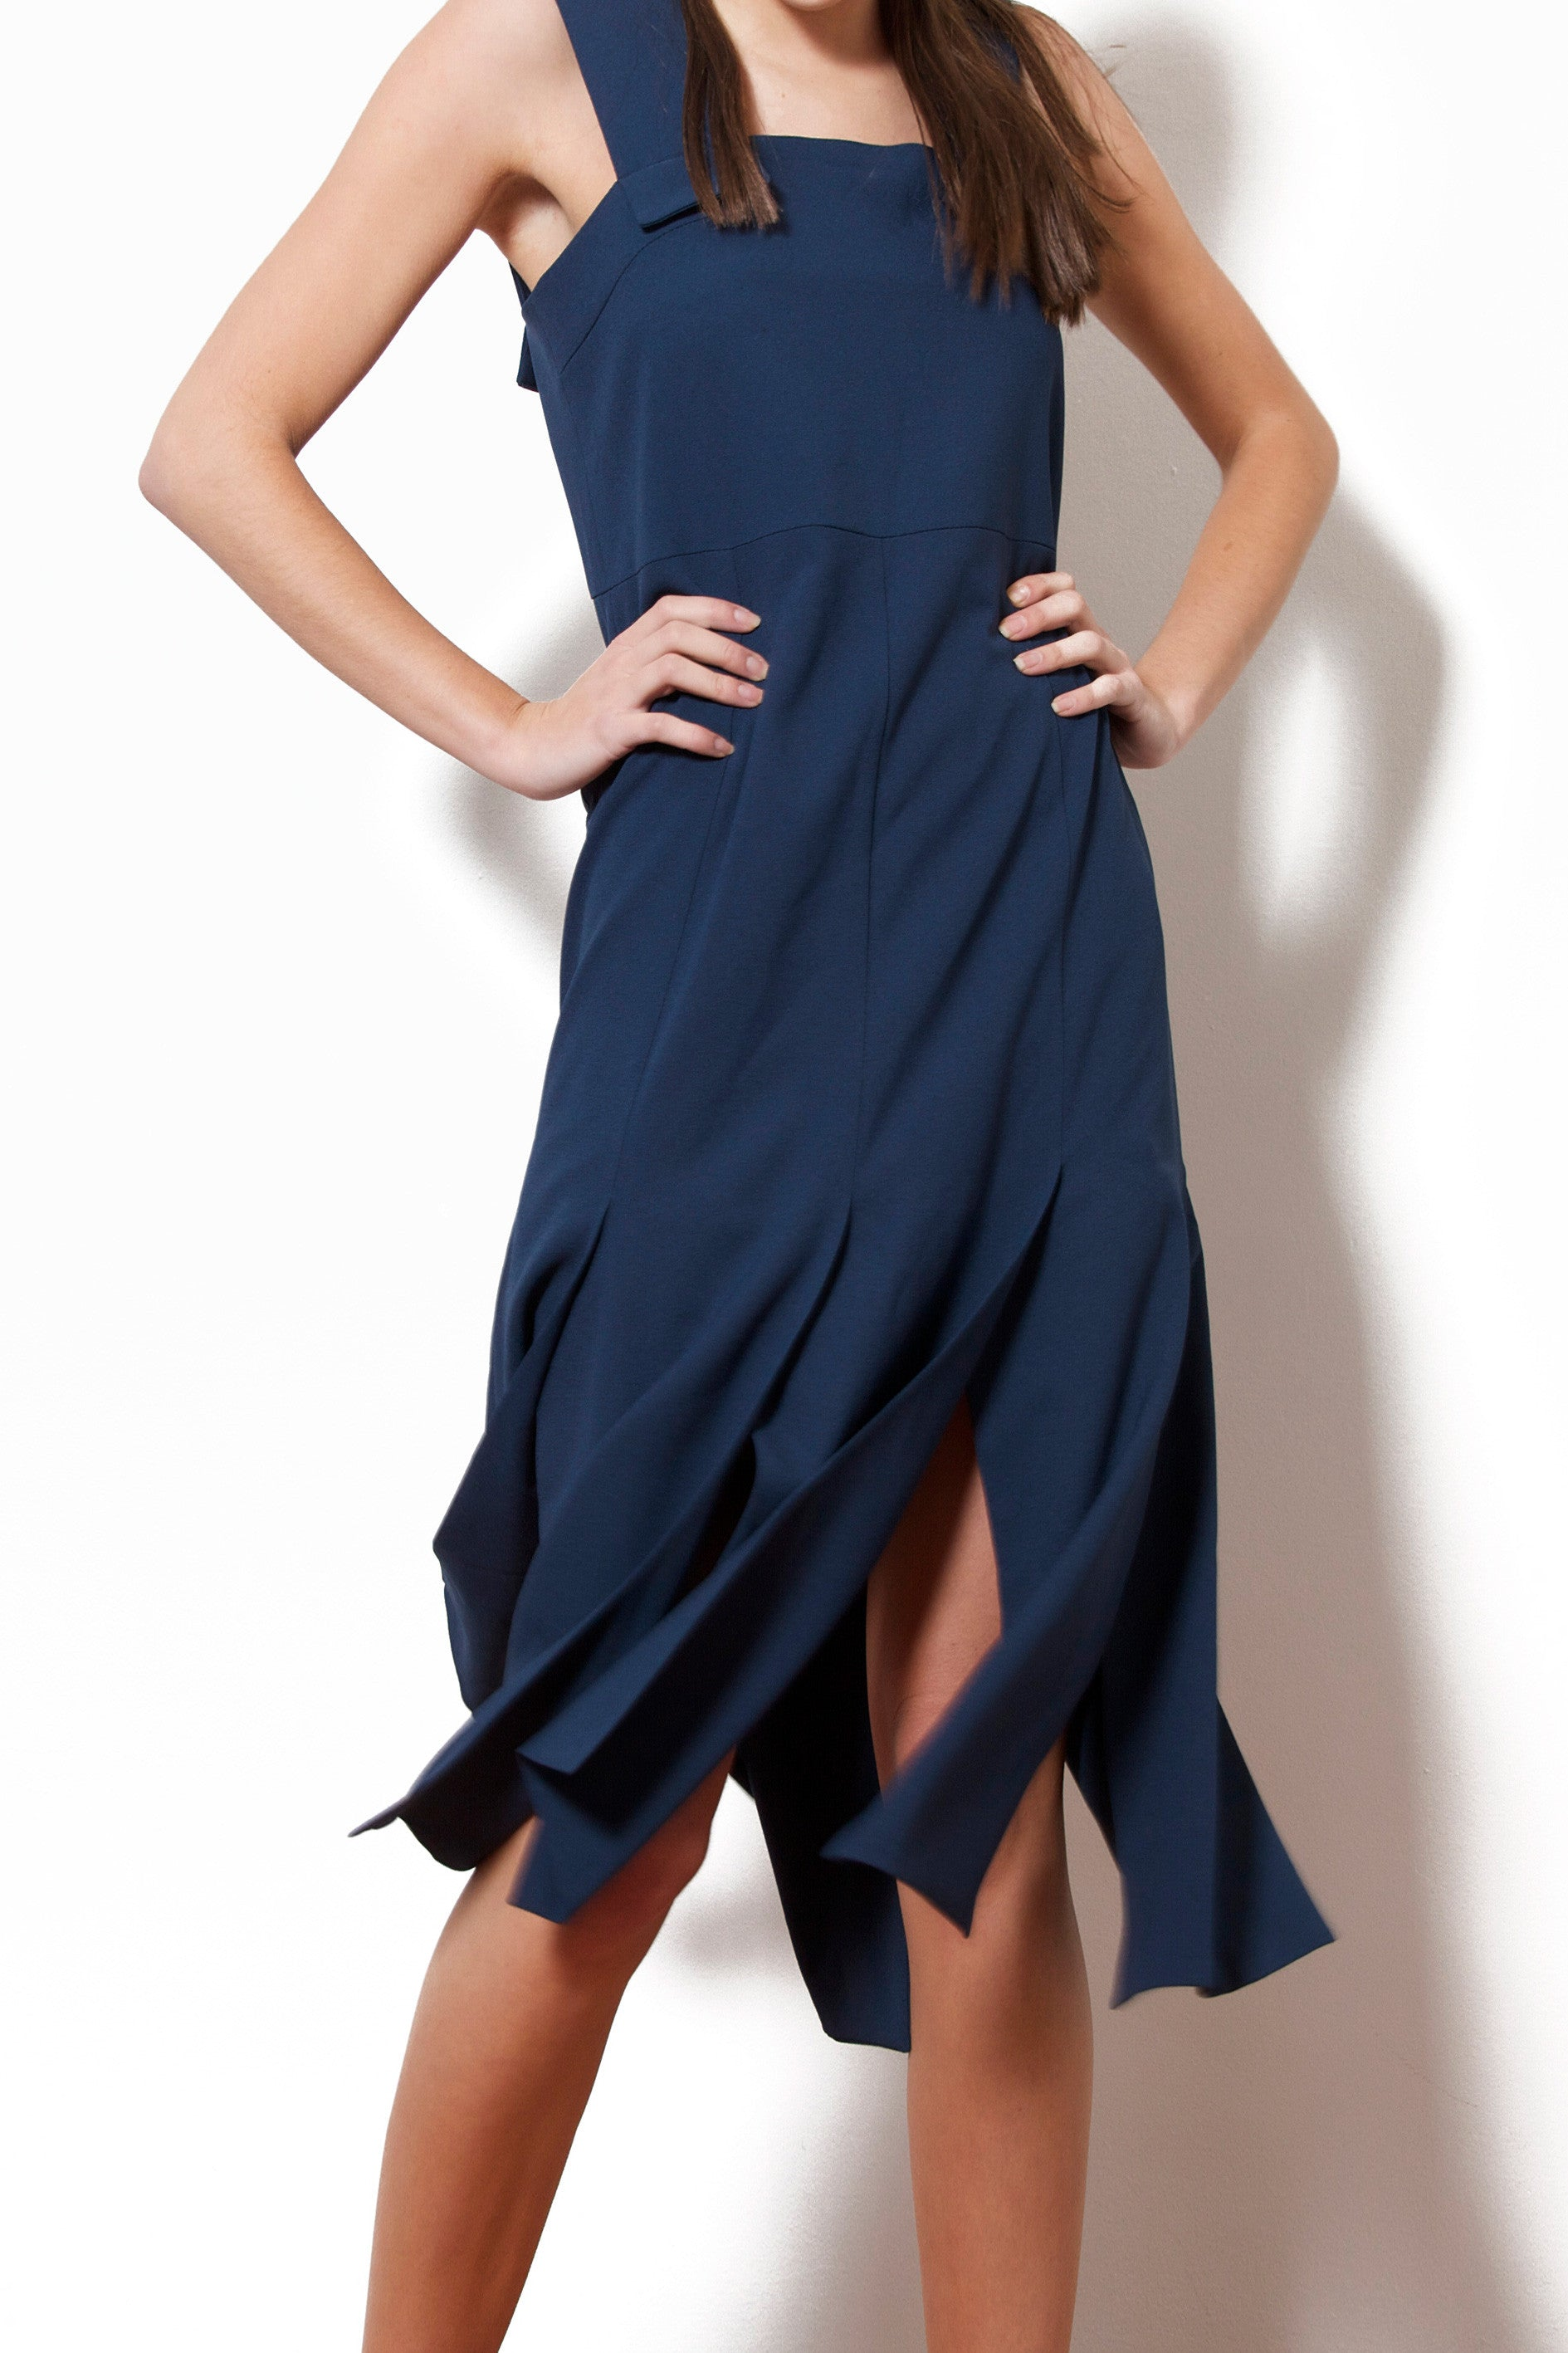 Fringed Dress (Navy)